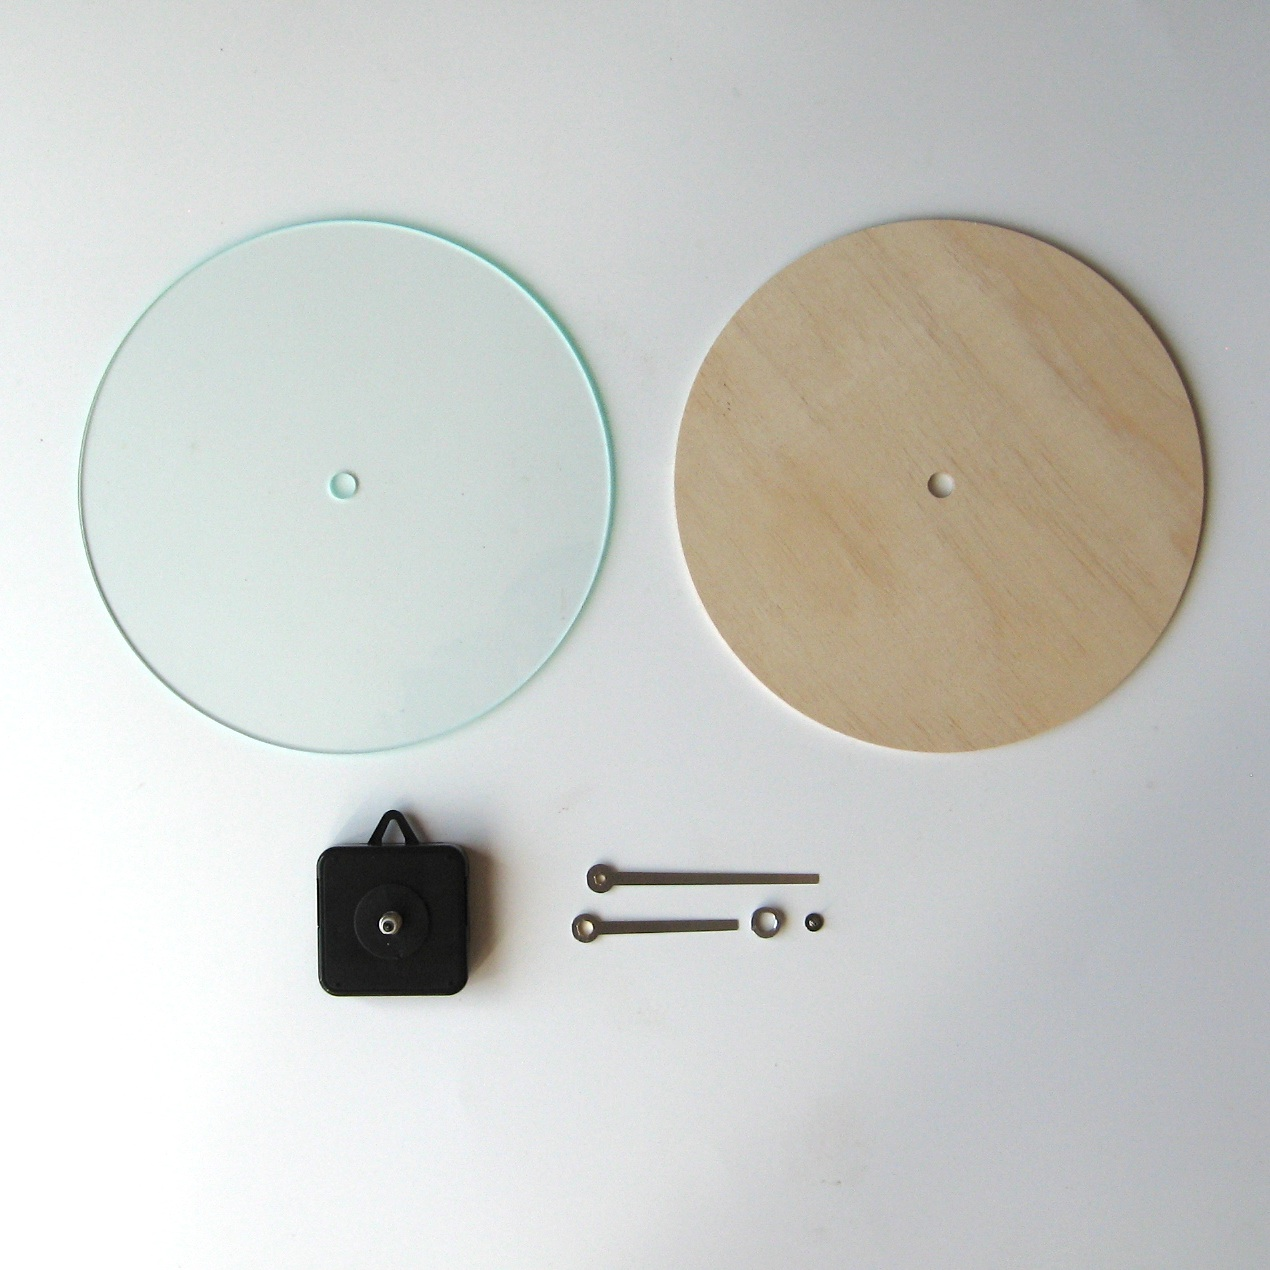 Objectify Diy Wall Clock Kit Round Felt